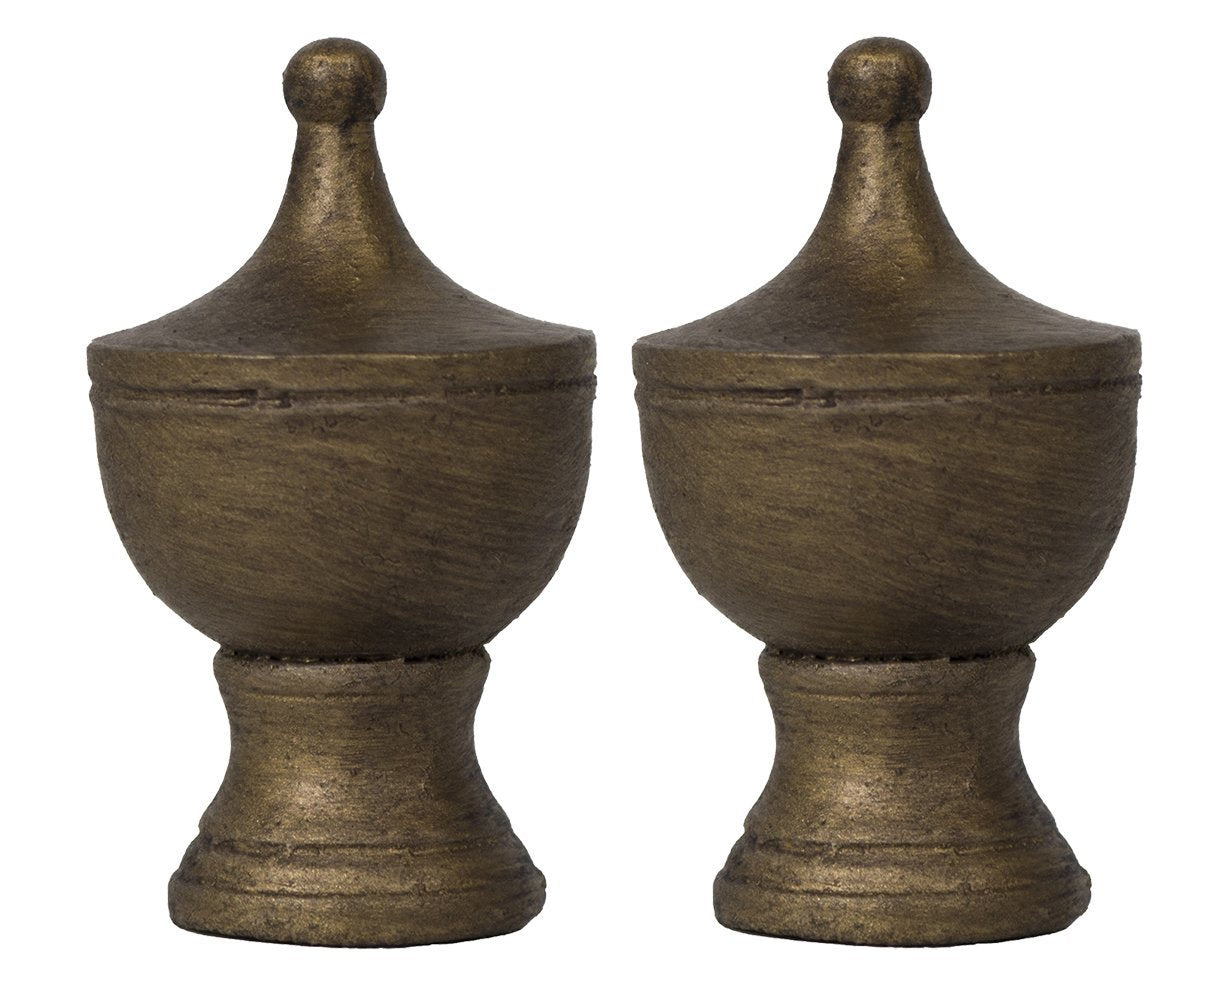 Urn Lamp Finial - 4 Finishes